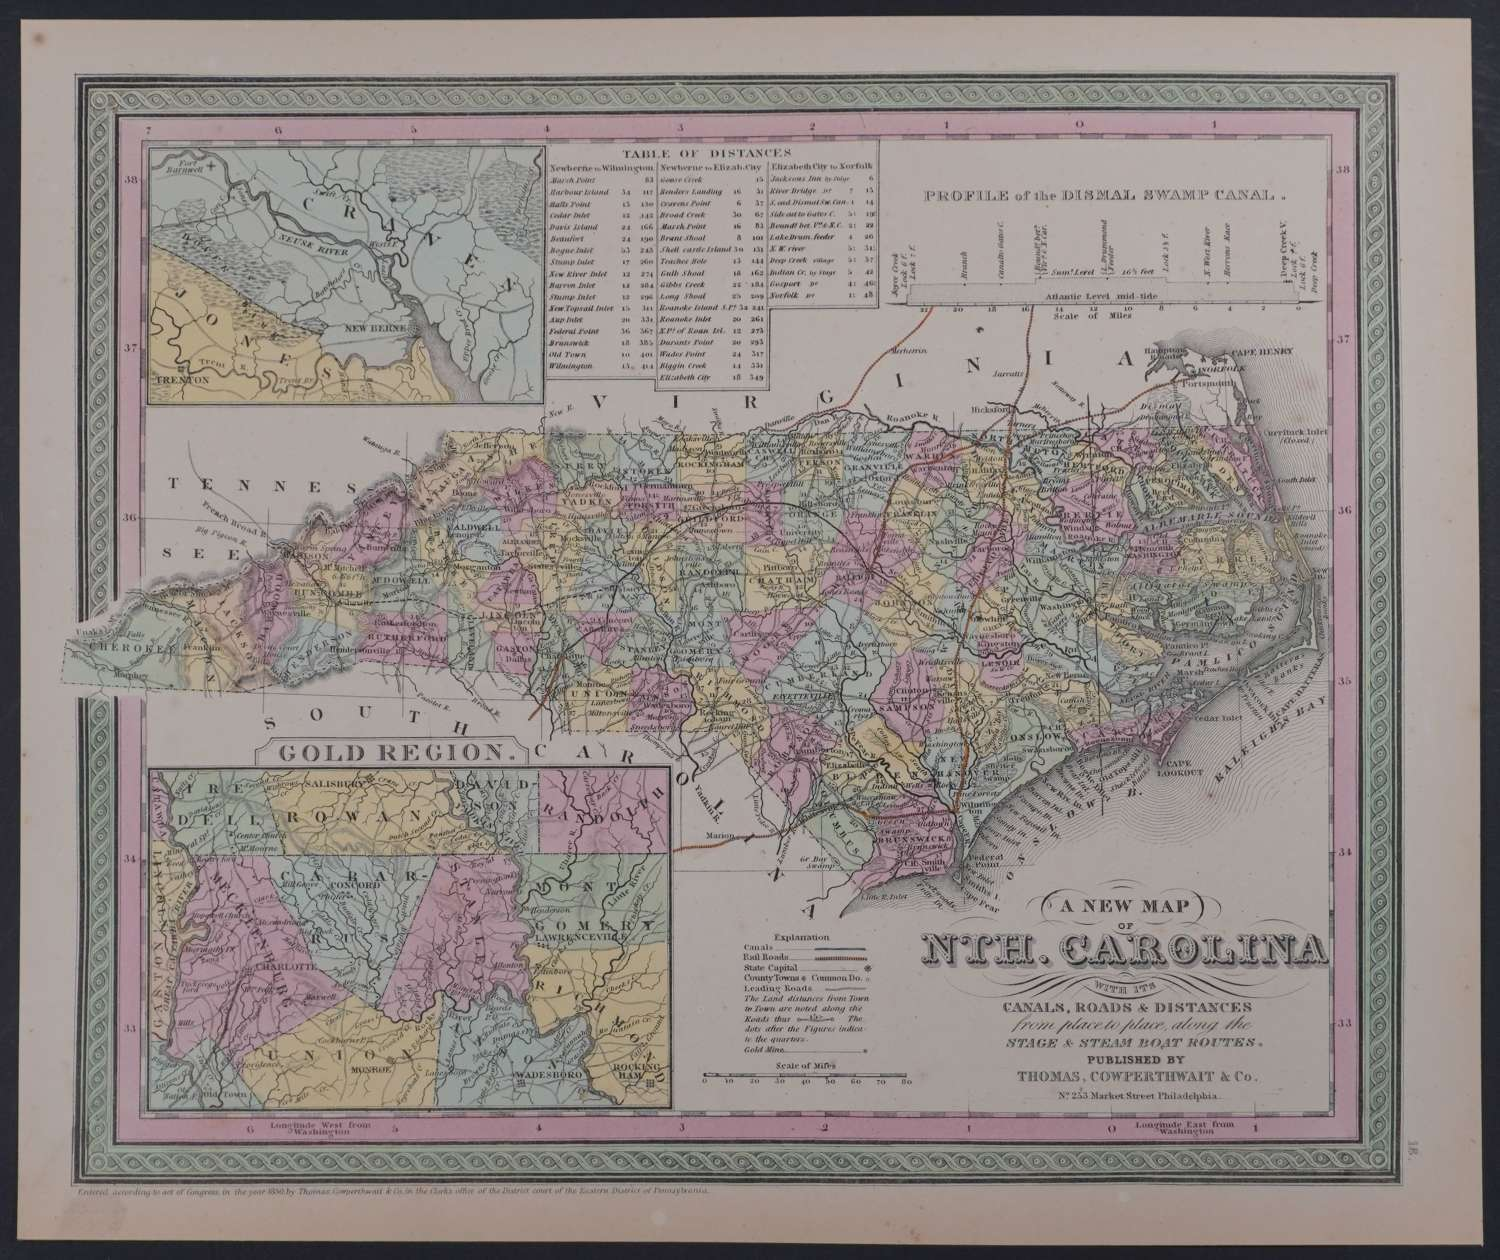 A New Map of  Nth. Carolina by Thomas Cowperthwait & Co